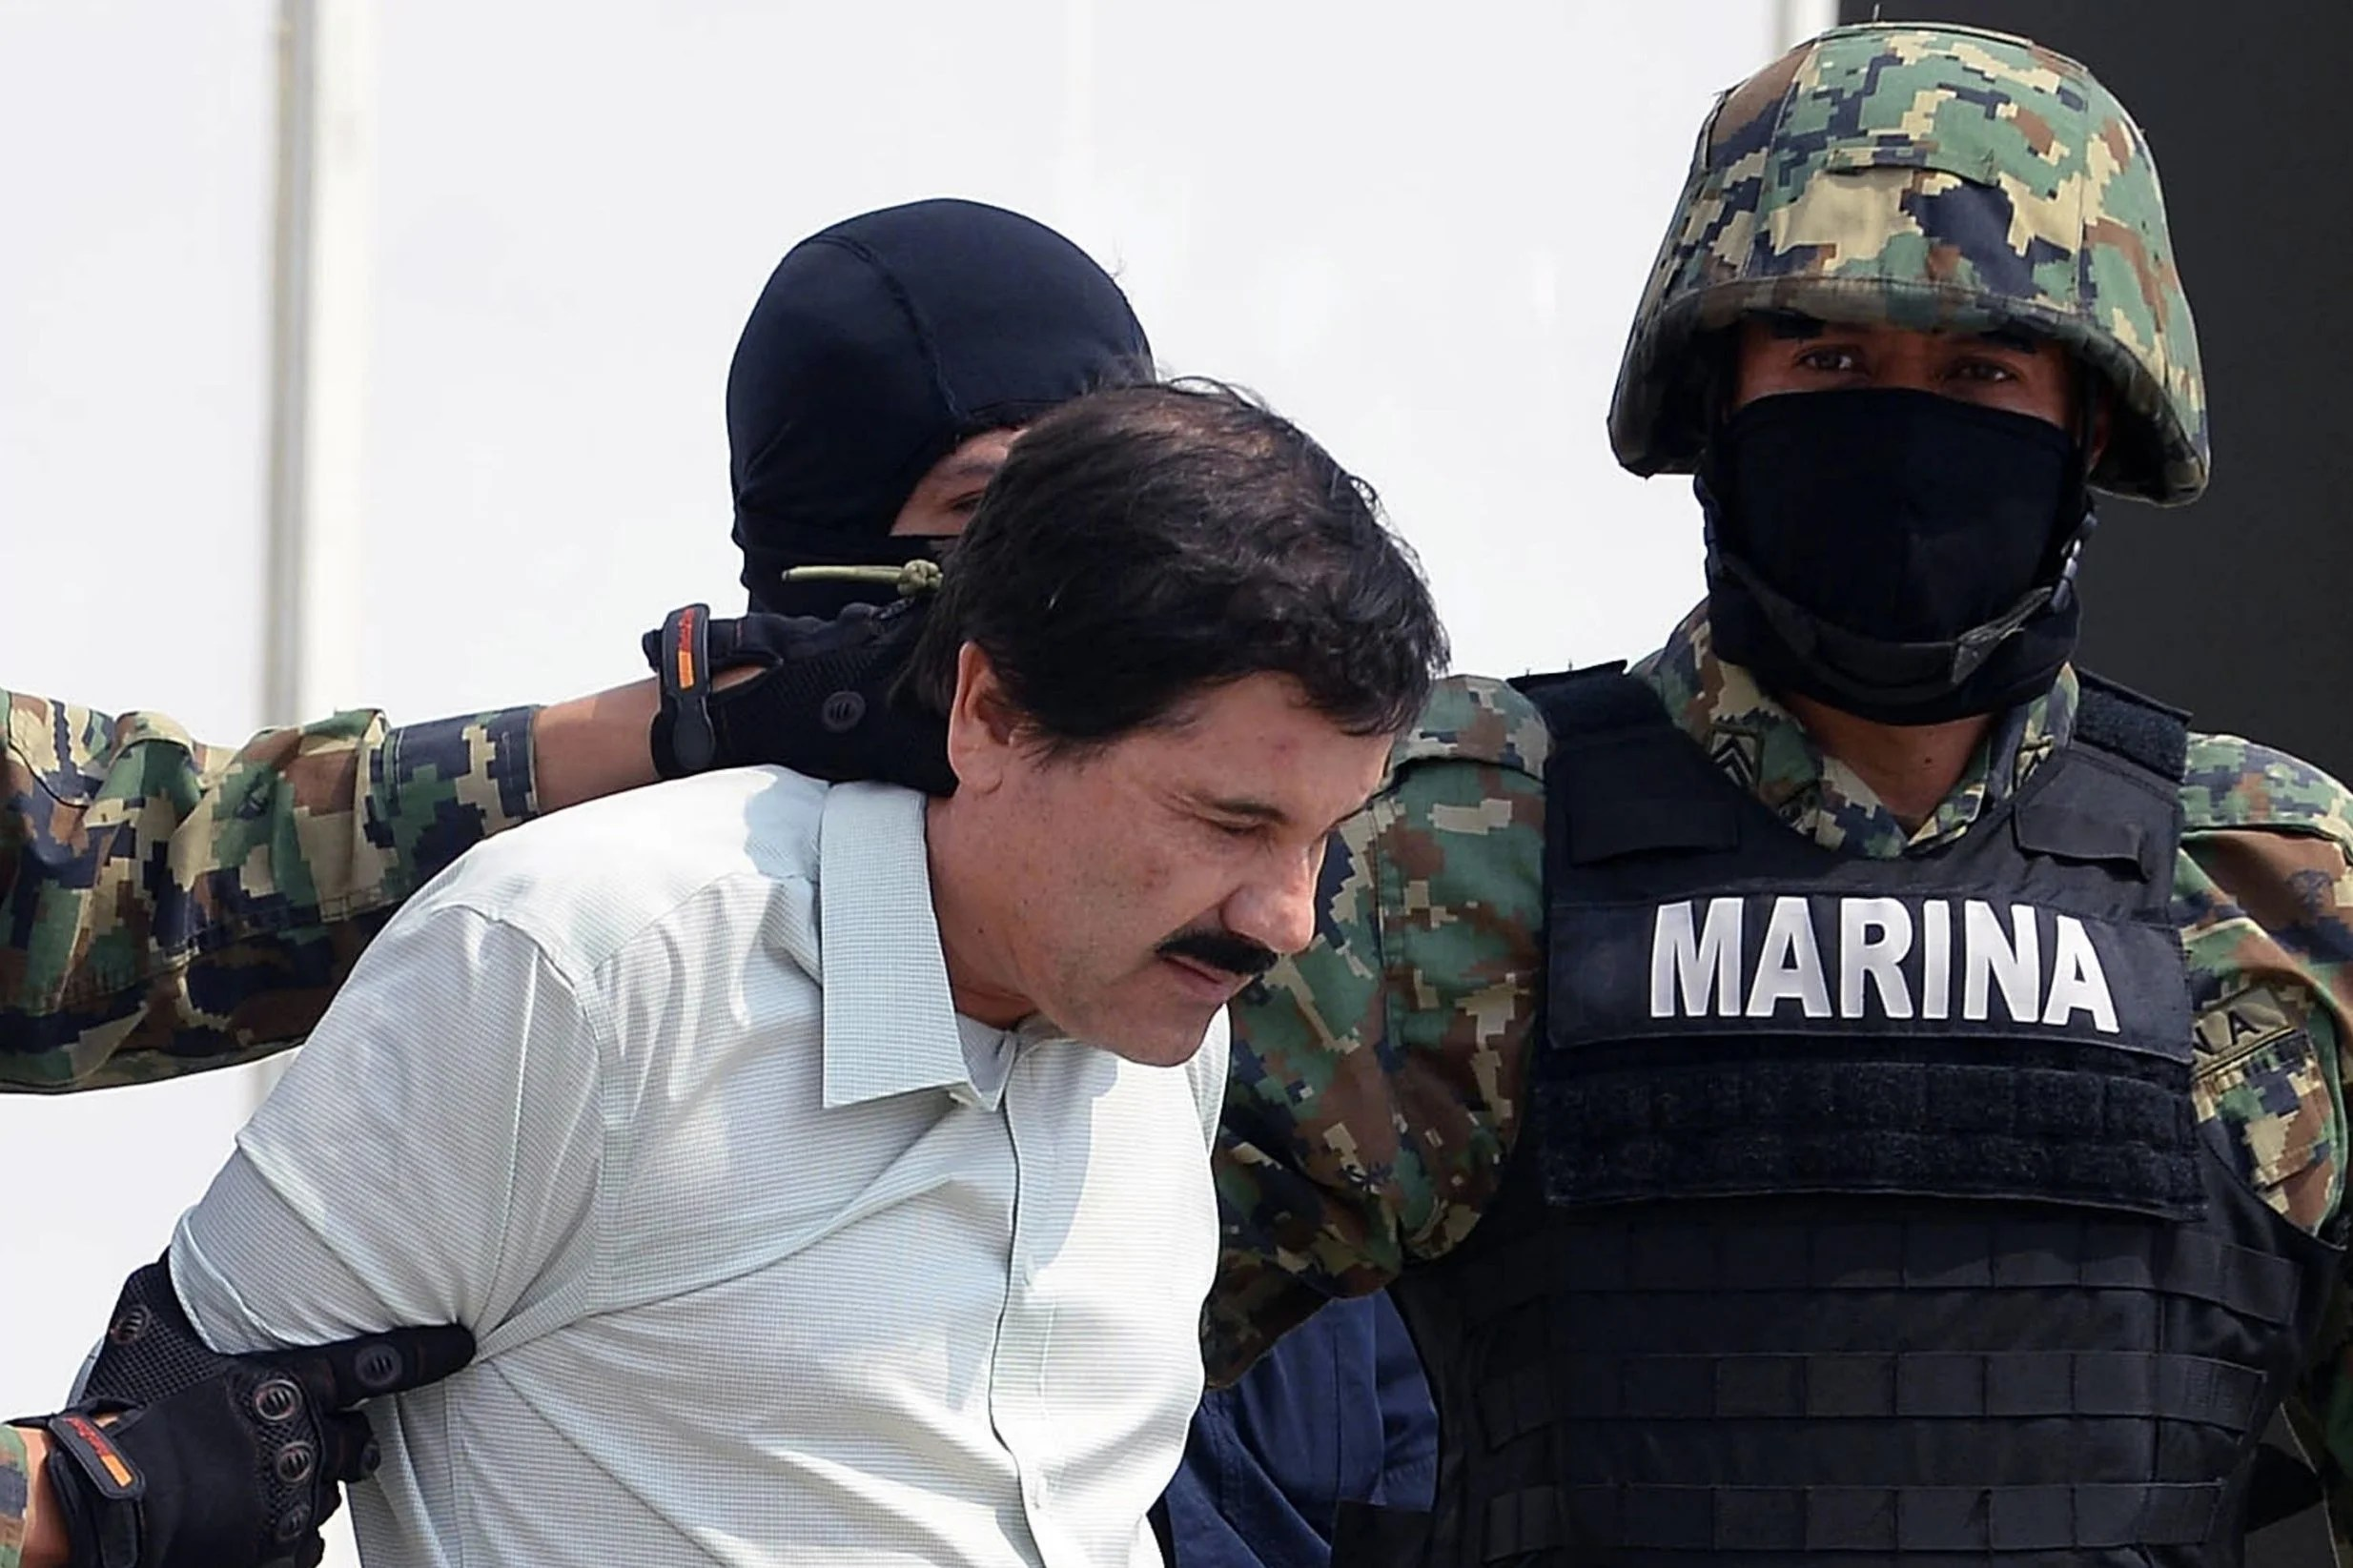 elchapo1202 'El Chapo' trial: Notorious Mexican drug lord found guilty on 10 counts in US trial